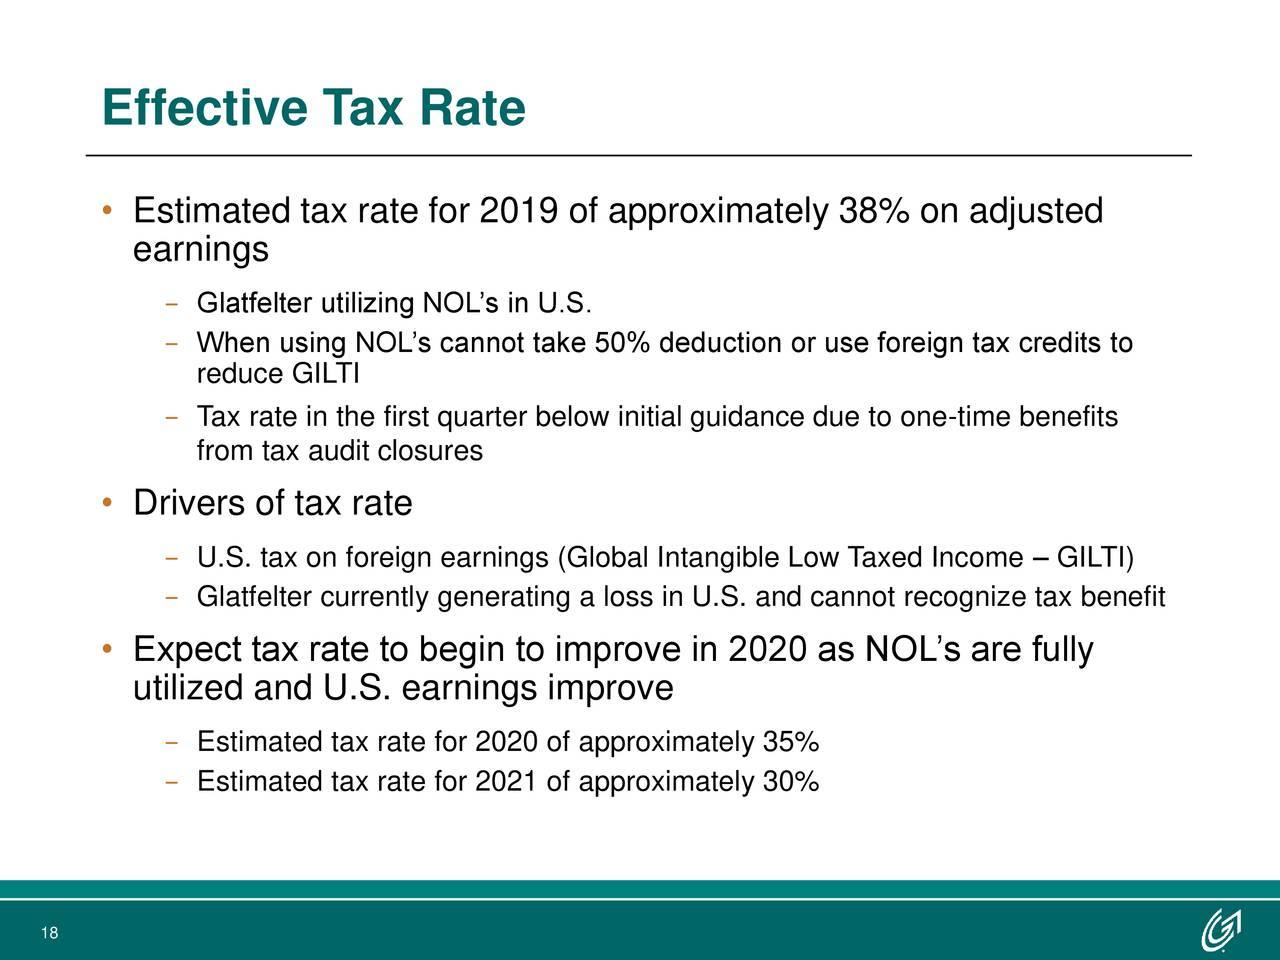 • Estimated tax rate for 2019 of approximately 38% on adjusted earnings − Glatfelter utilizing NOL's in U.S. − When using NOL's cannot take 50% deduction or use foreign tax credits to reduce GILTI − Tax rate in the first quarter below initial guidance due to one-time benefits from tax audit closures • Drivers of tax rate − U.S. tax on foreign earnings (Global Intangible Low Taxed Income – GILTI) − Glatfelter currently generating a loss in U.S. and cannot recognize tax benefit • Expect tax rate to begin to improve in 2020 as NOL's are fully utilized and U.S. earnings improve − Estimated tax rate for 2020 of approximately 35% − Estimated tax rate for 2021 of approximately 30% 18